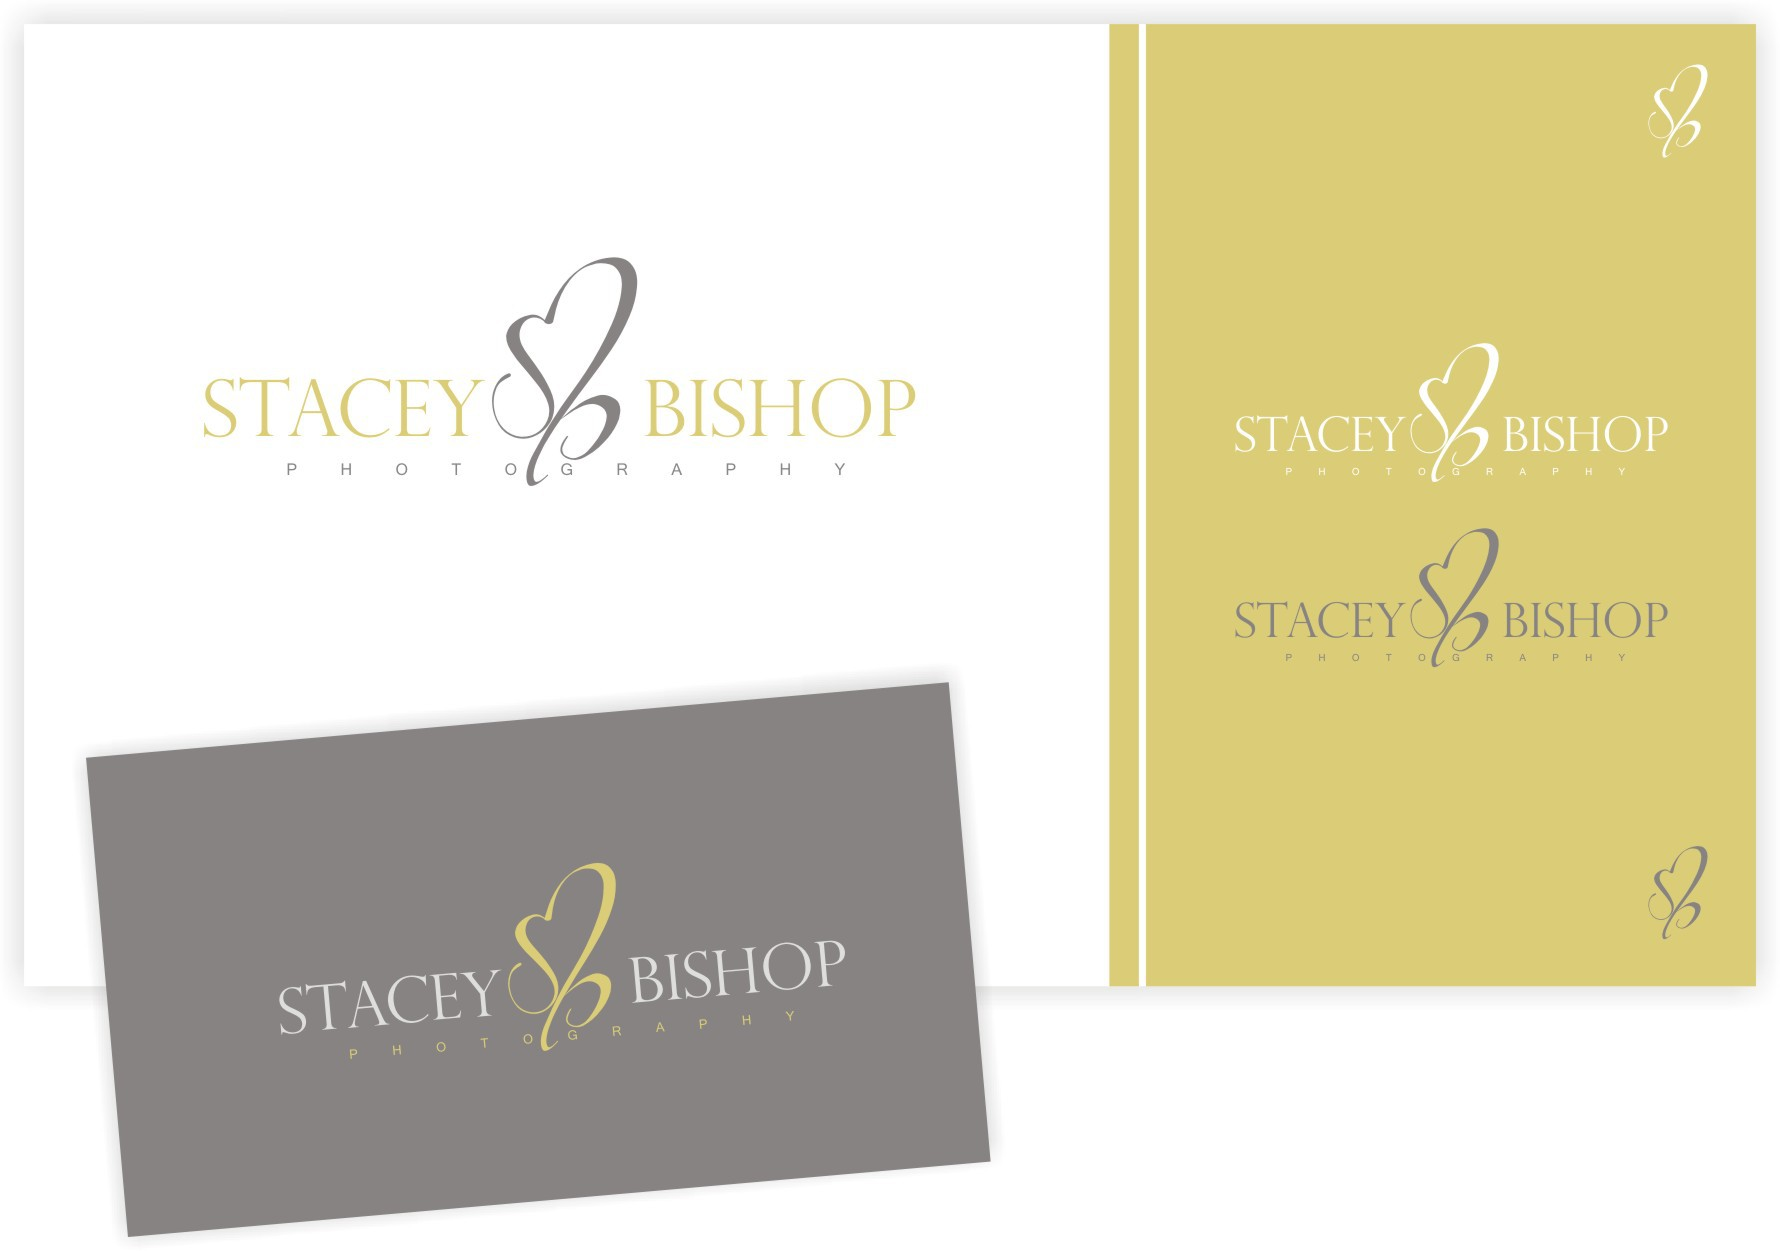 New logo wanted for Stacey Bishop Photography